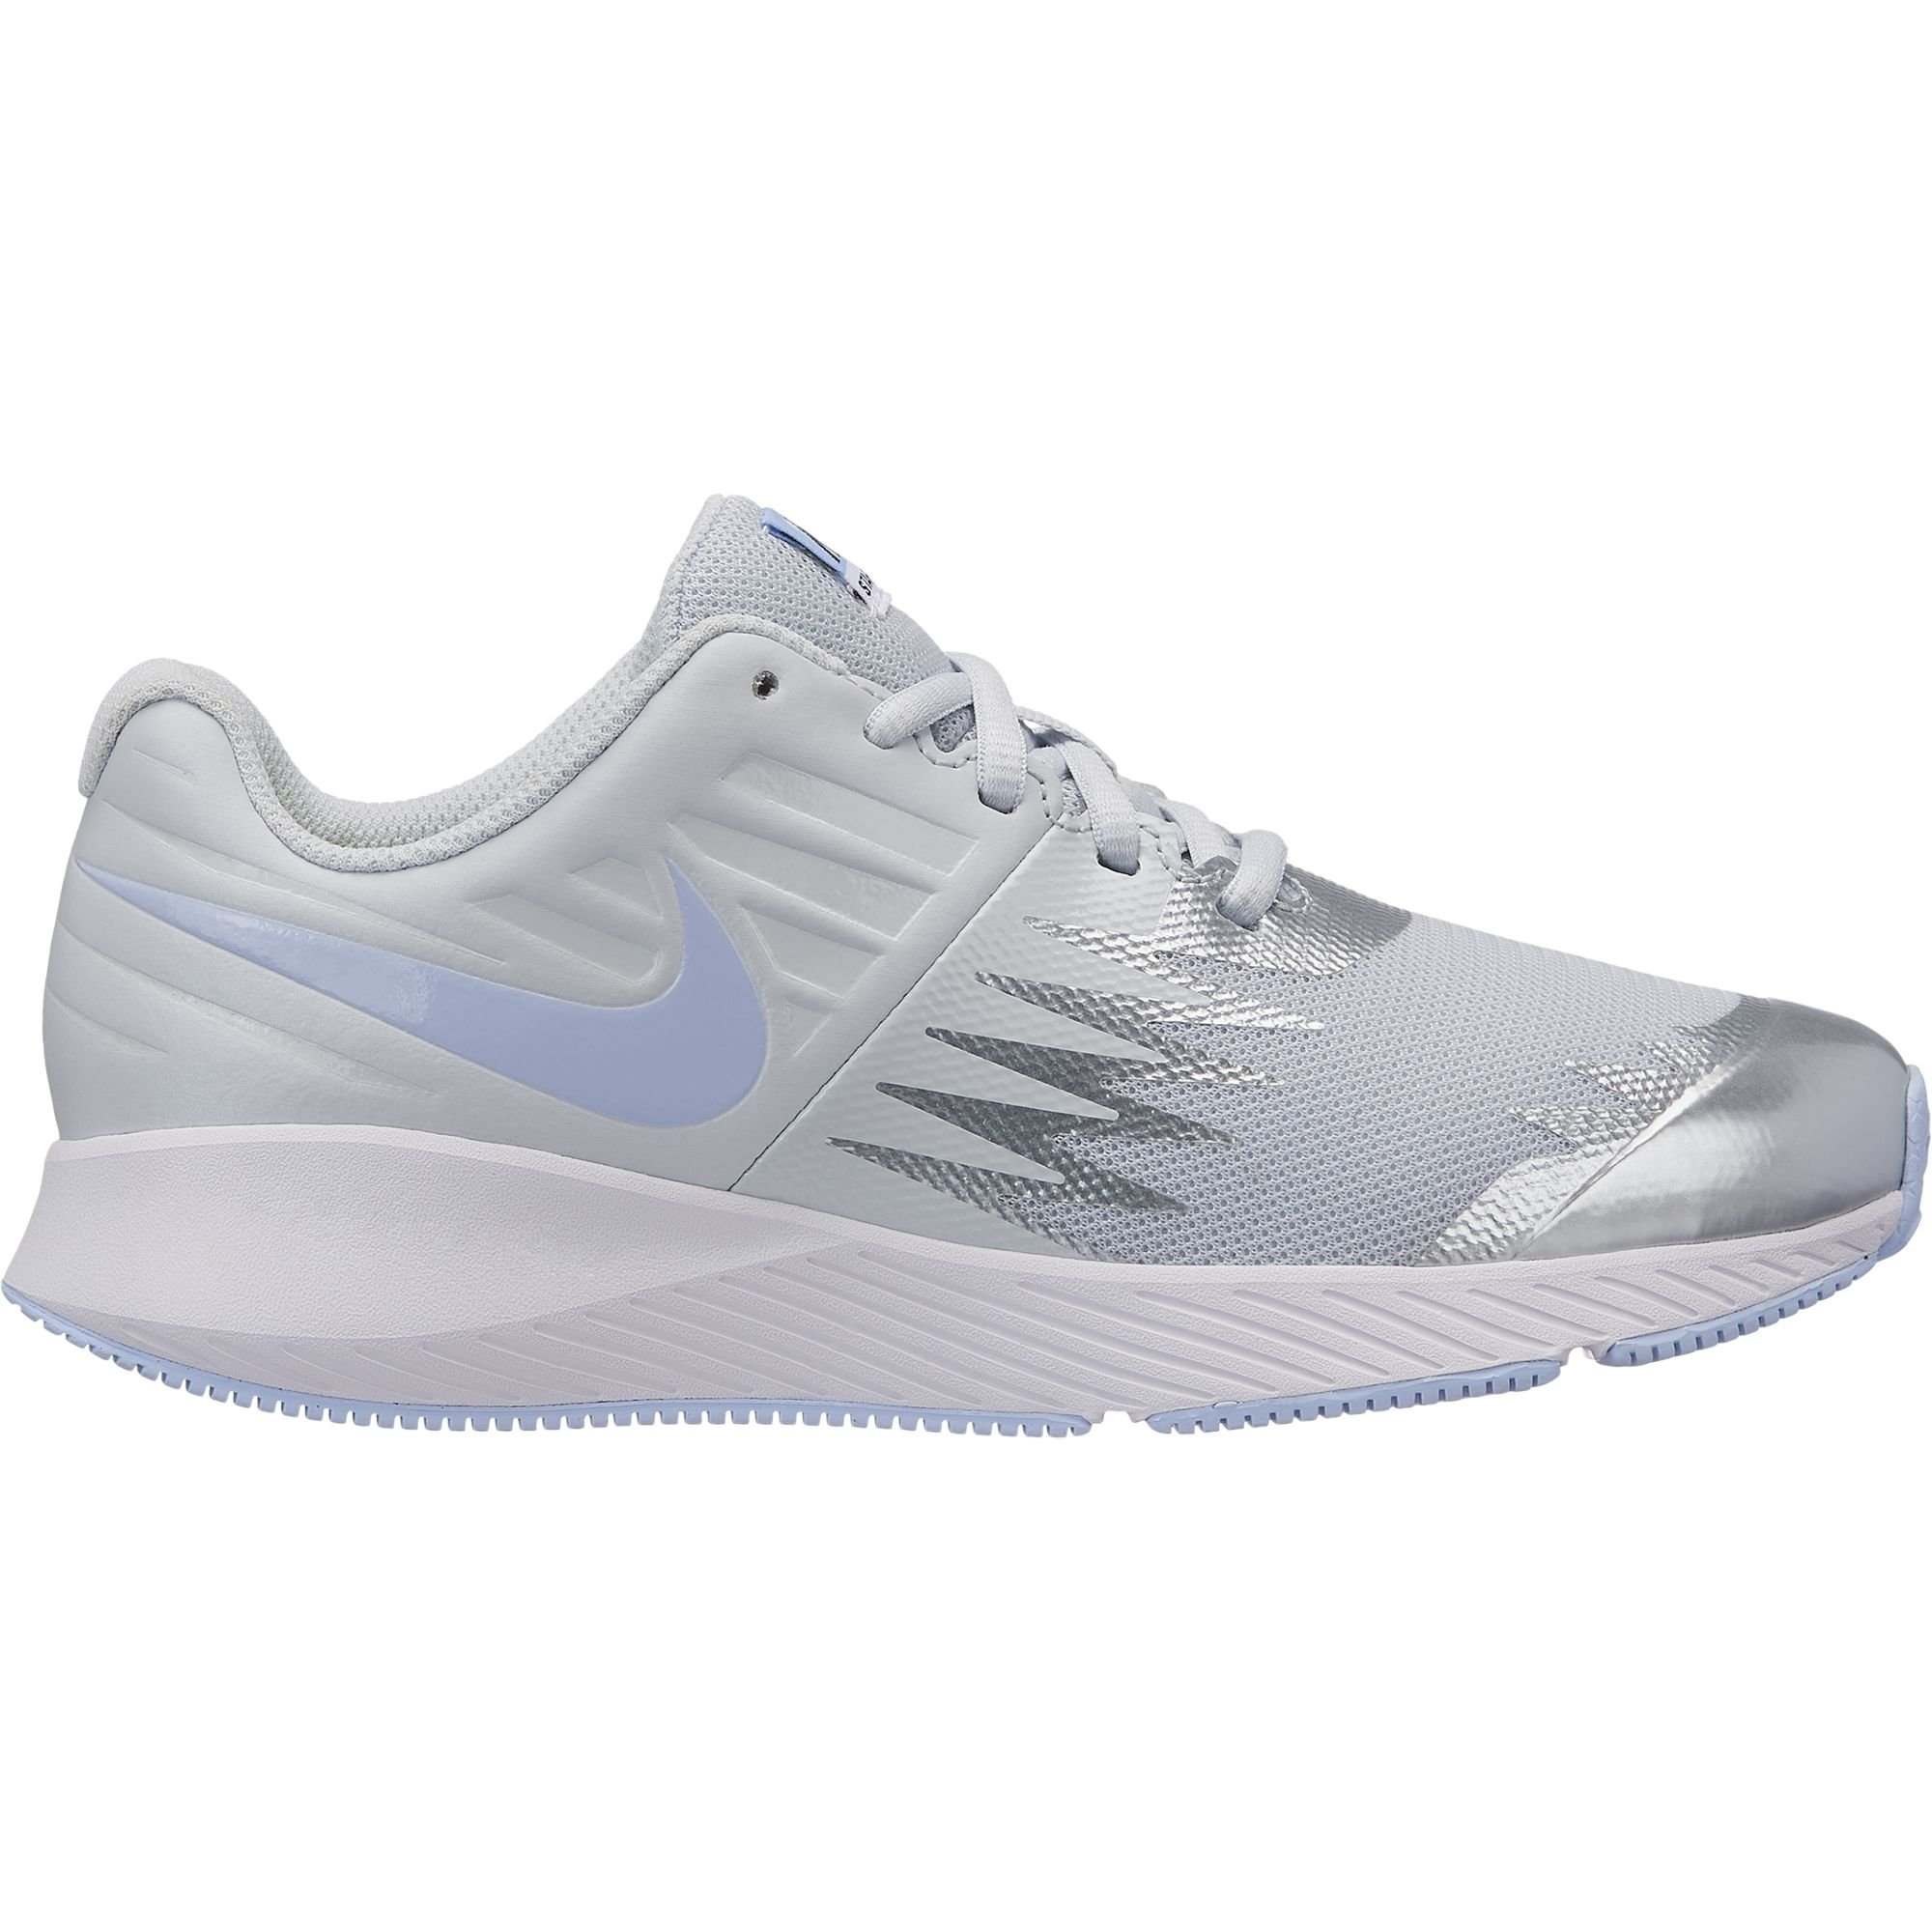 Nike Girl's Star Runner (GS) Running Shoe Pure Platinum/Royal Tint/White Size 3.5 M US by Nike (Image #1)